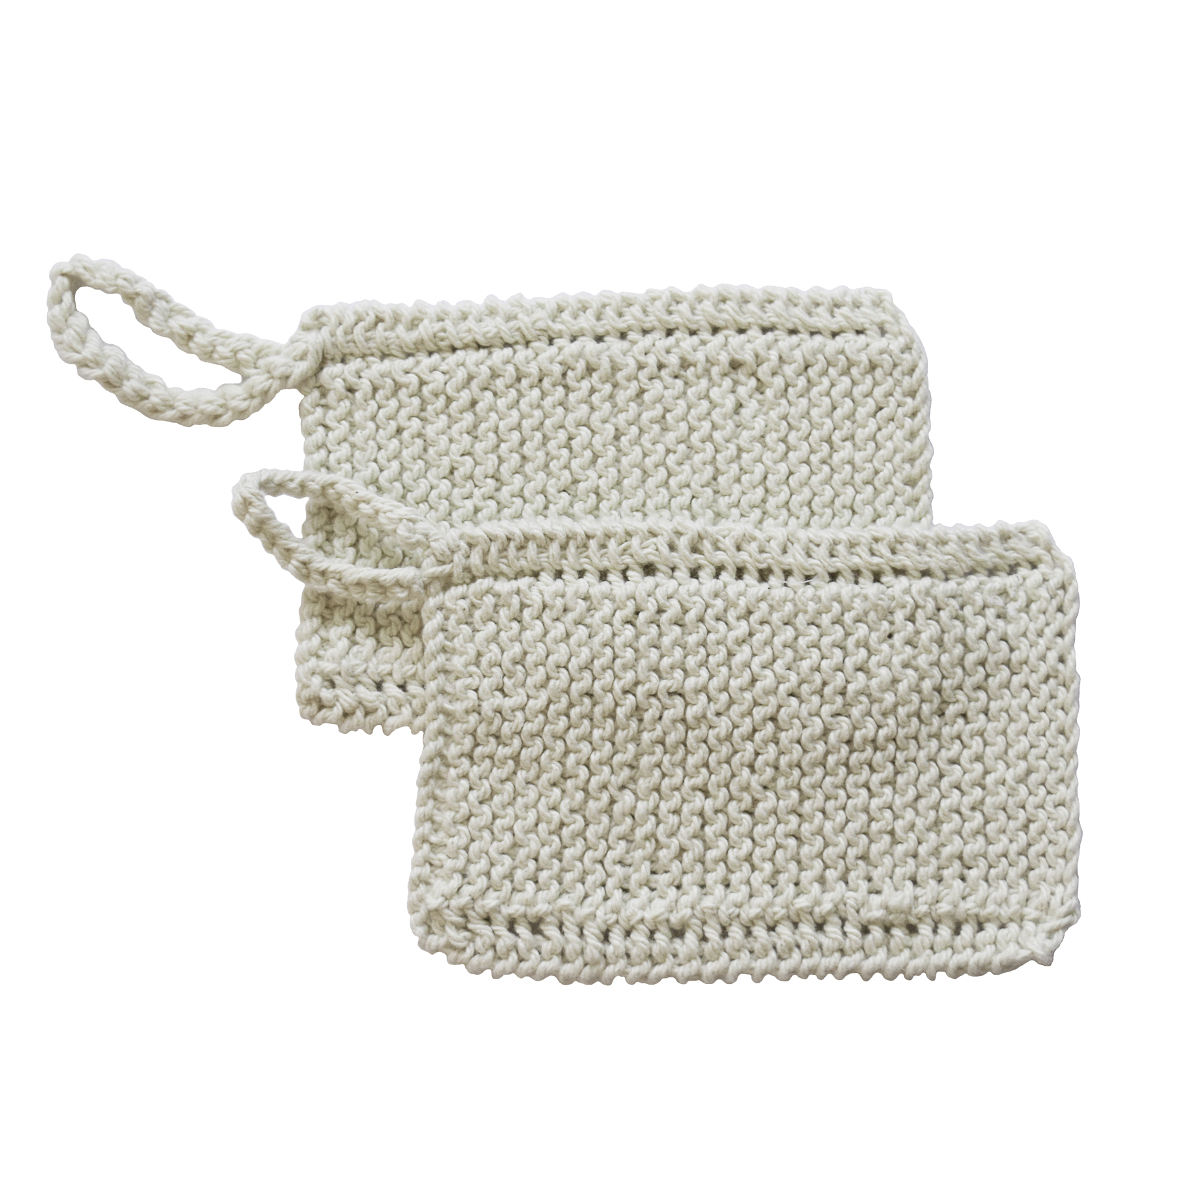 Toockies Organic Cotton Z-Scrub DIsh Scrubber, Set of 2